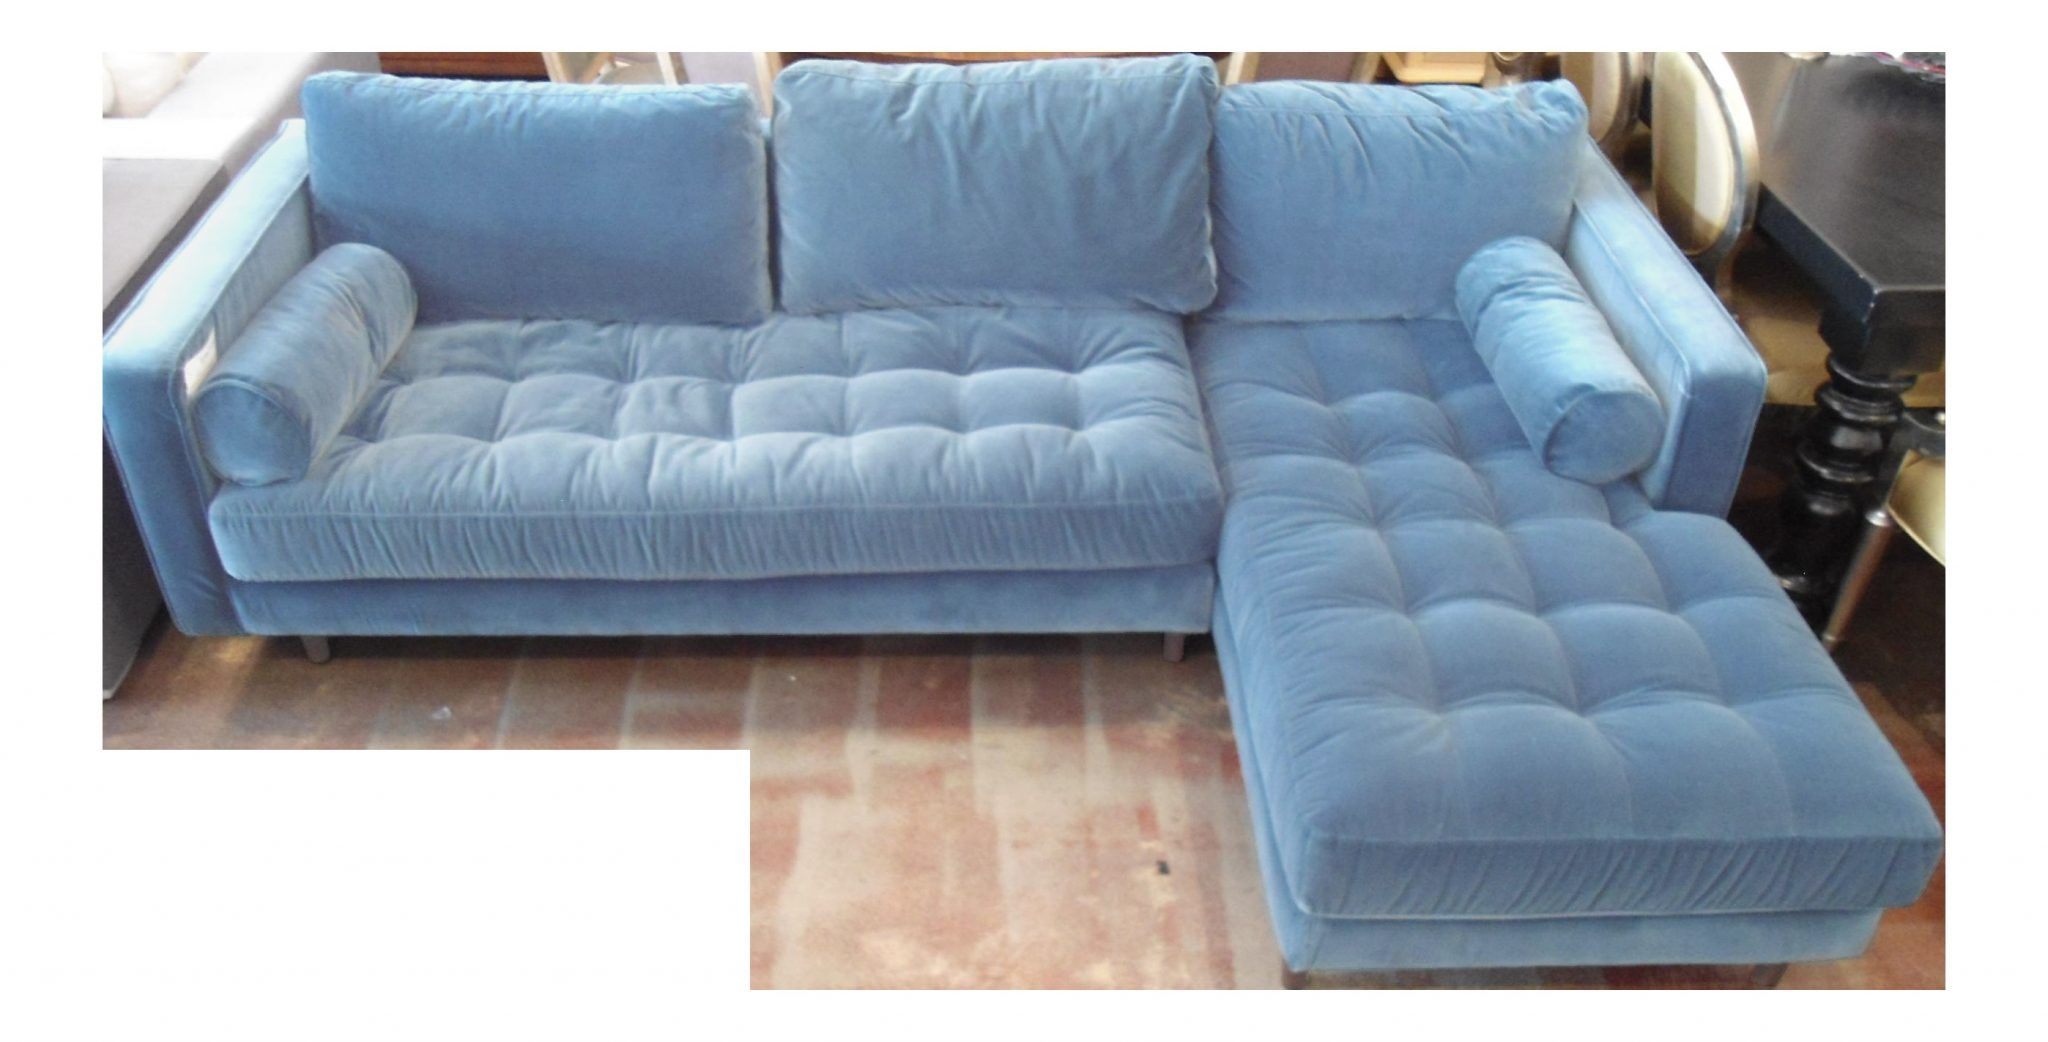 Superbe Blue Velvet Sectional Sofa   Blue Velvet Sectional Sofa, Blue Velvet  Sectional Sofa For Sale